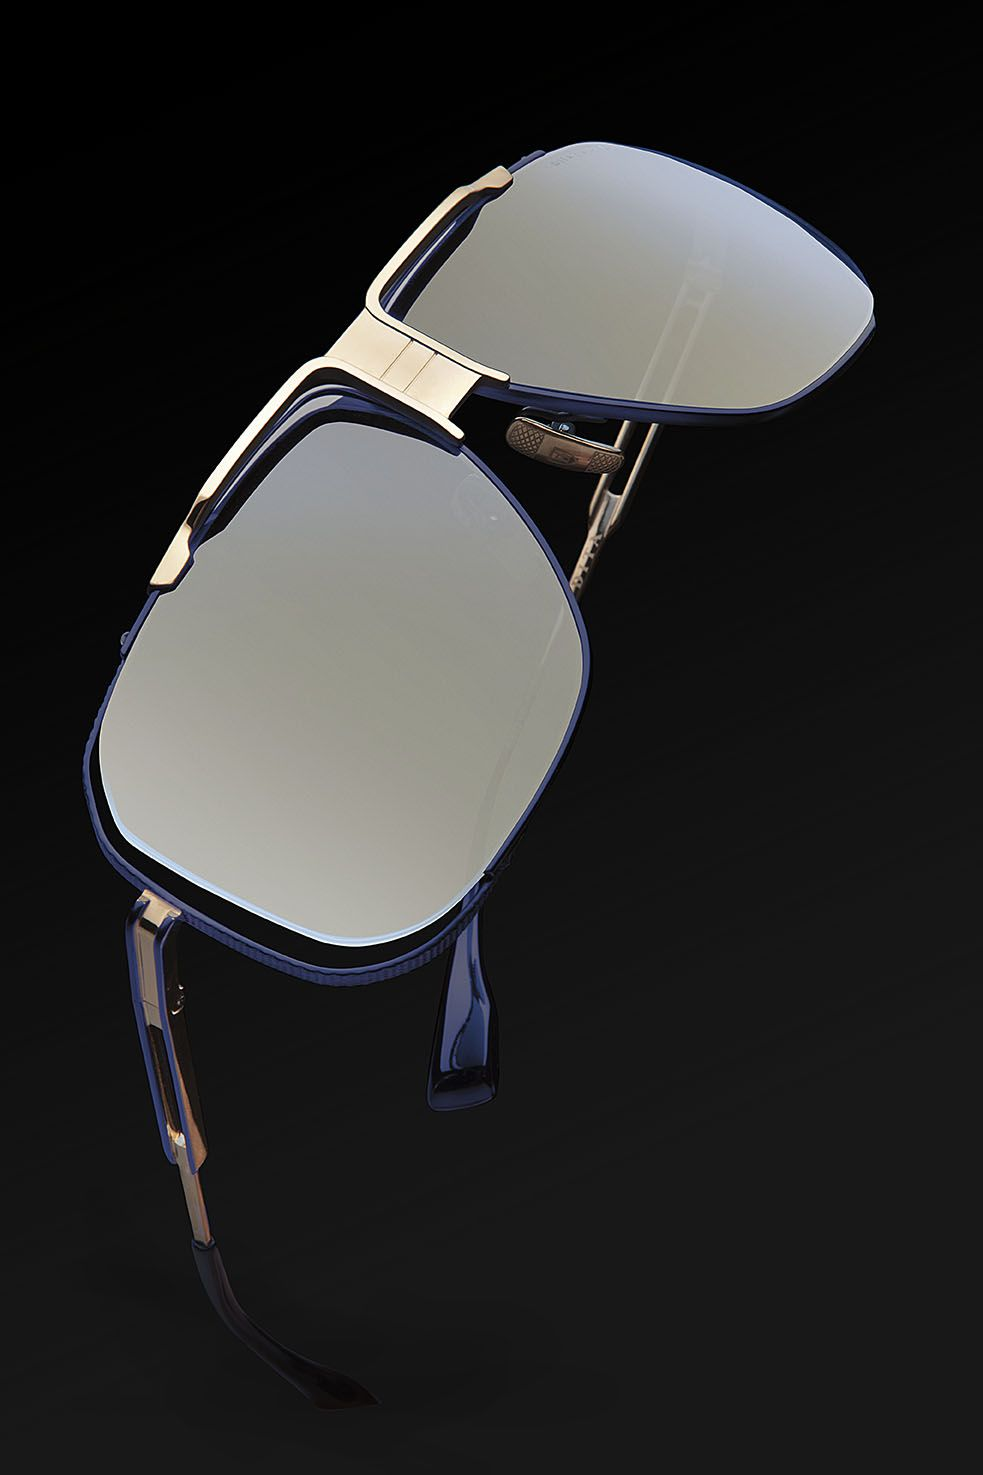 e80fc4a546 The Dita Cascais in Navy and Gold  DITAeyewear Designer Sunglasses Mens